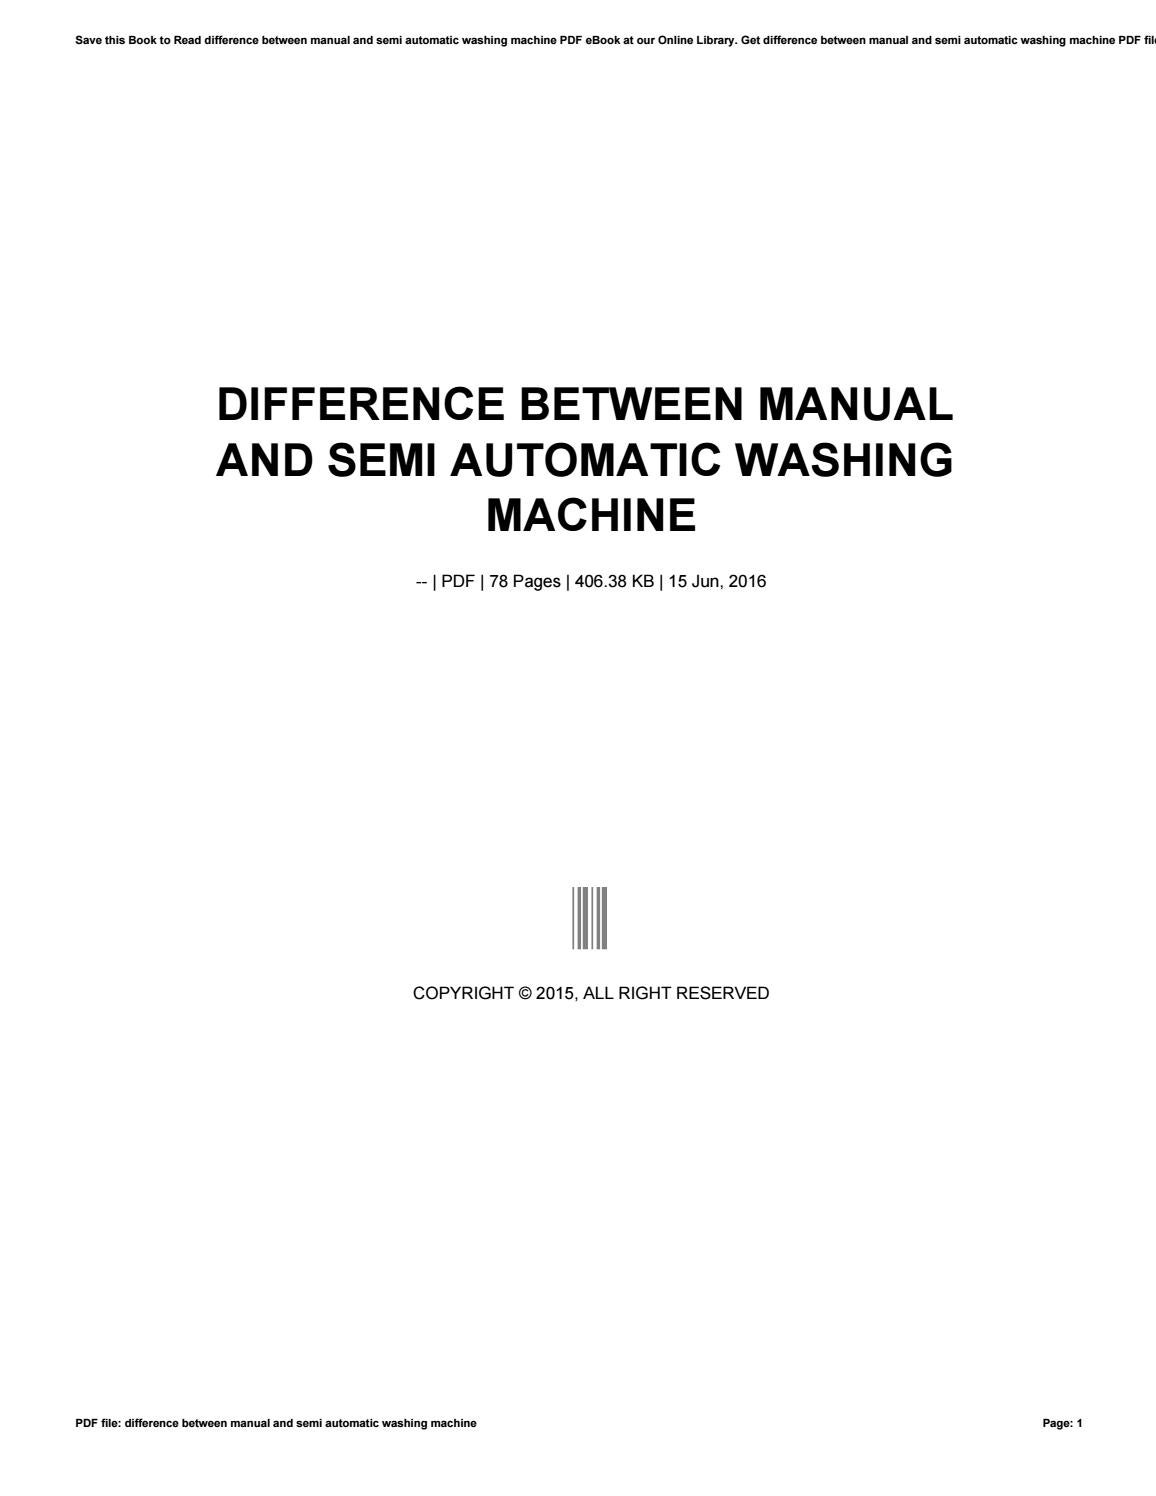 Difference between manual and semi automatic washing machine by 50mb1 -  issuu